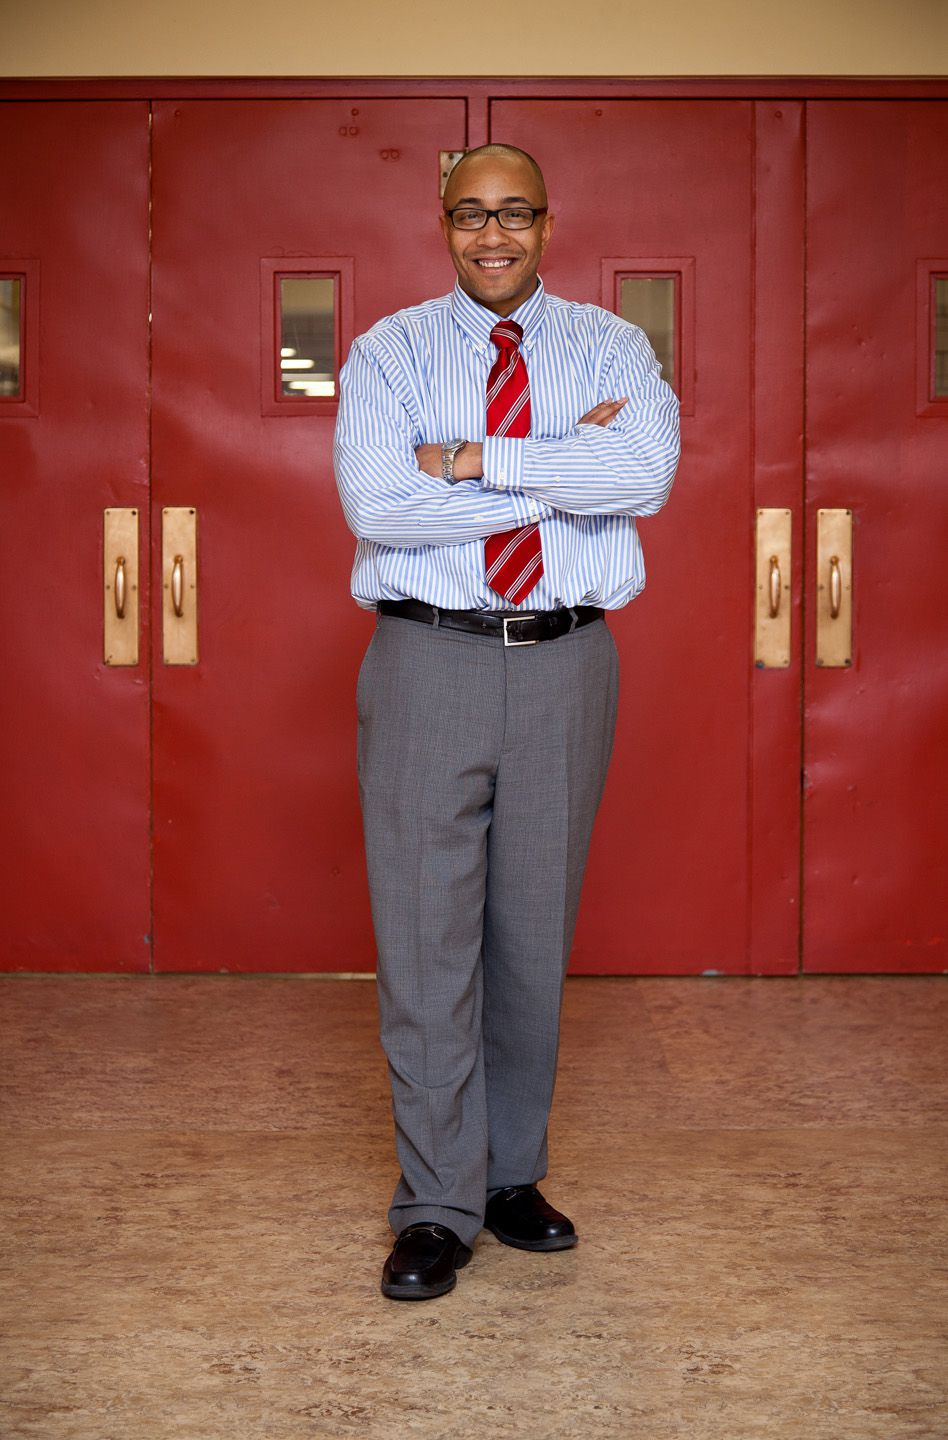 Nick Dawkins, currently the principal at Hamilton Middle School, will be principal at Manual High starting next school year.